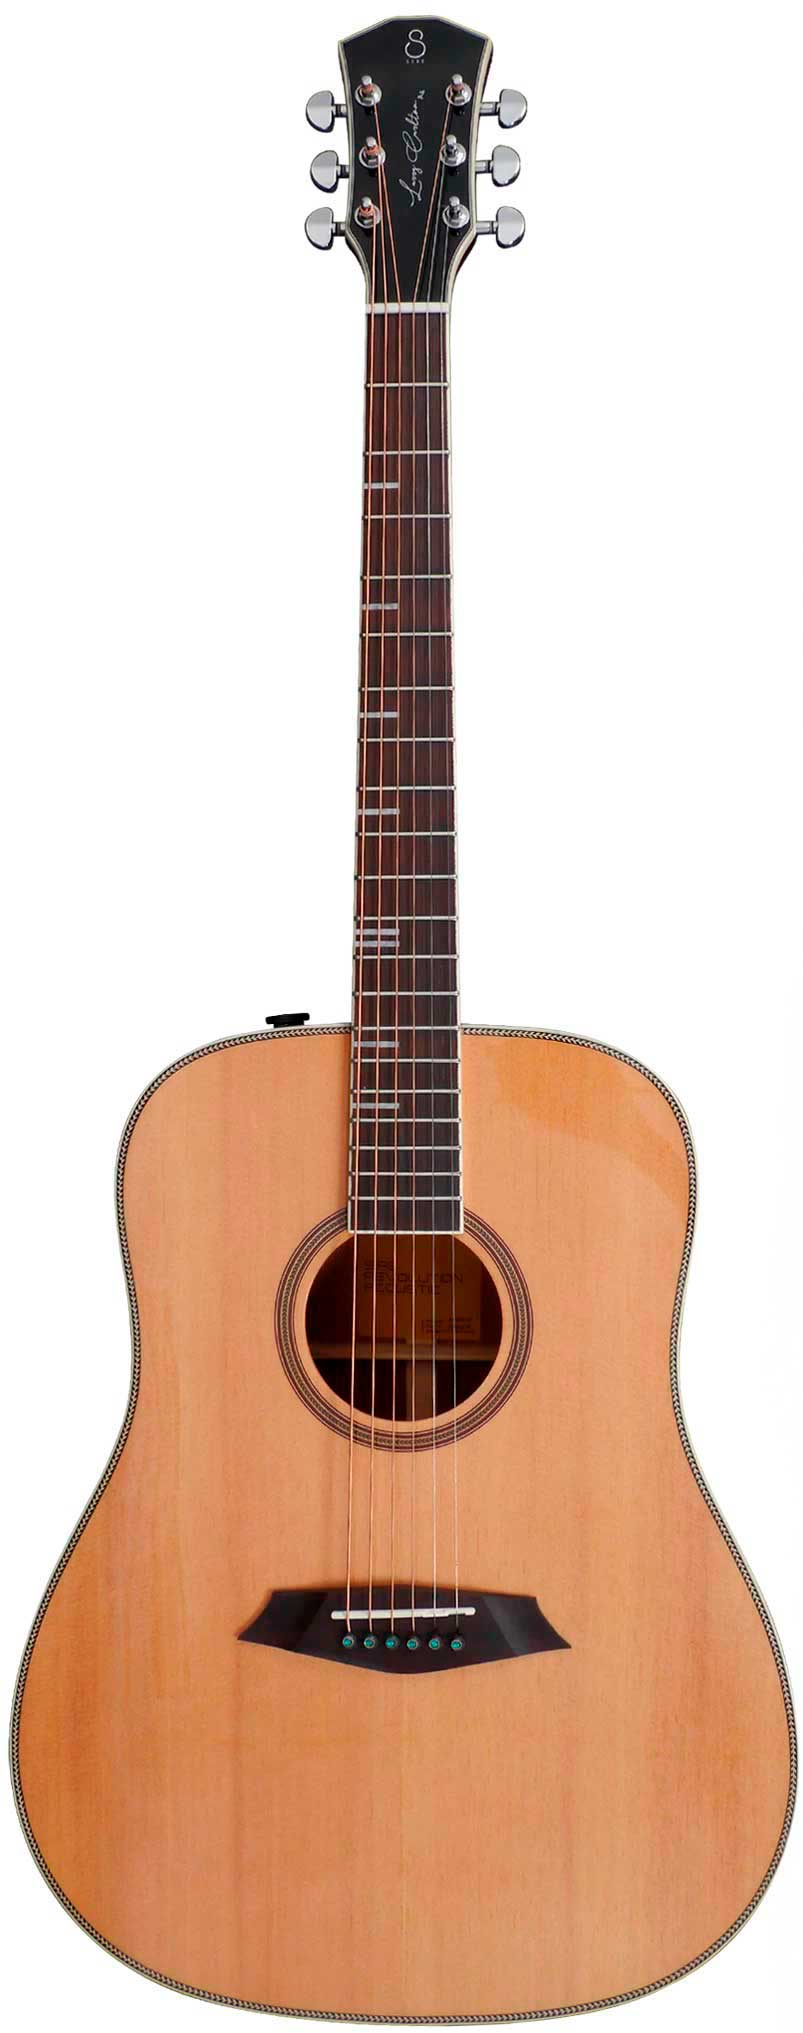 SIRE BY MARCUS MILLER A4-D DREADNOUGHT NATURAL